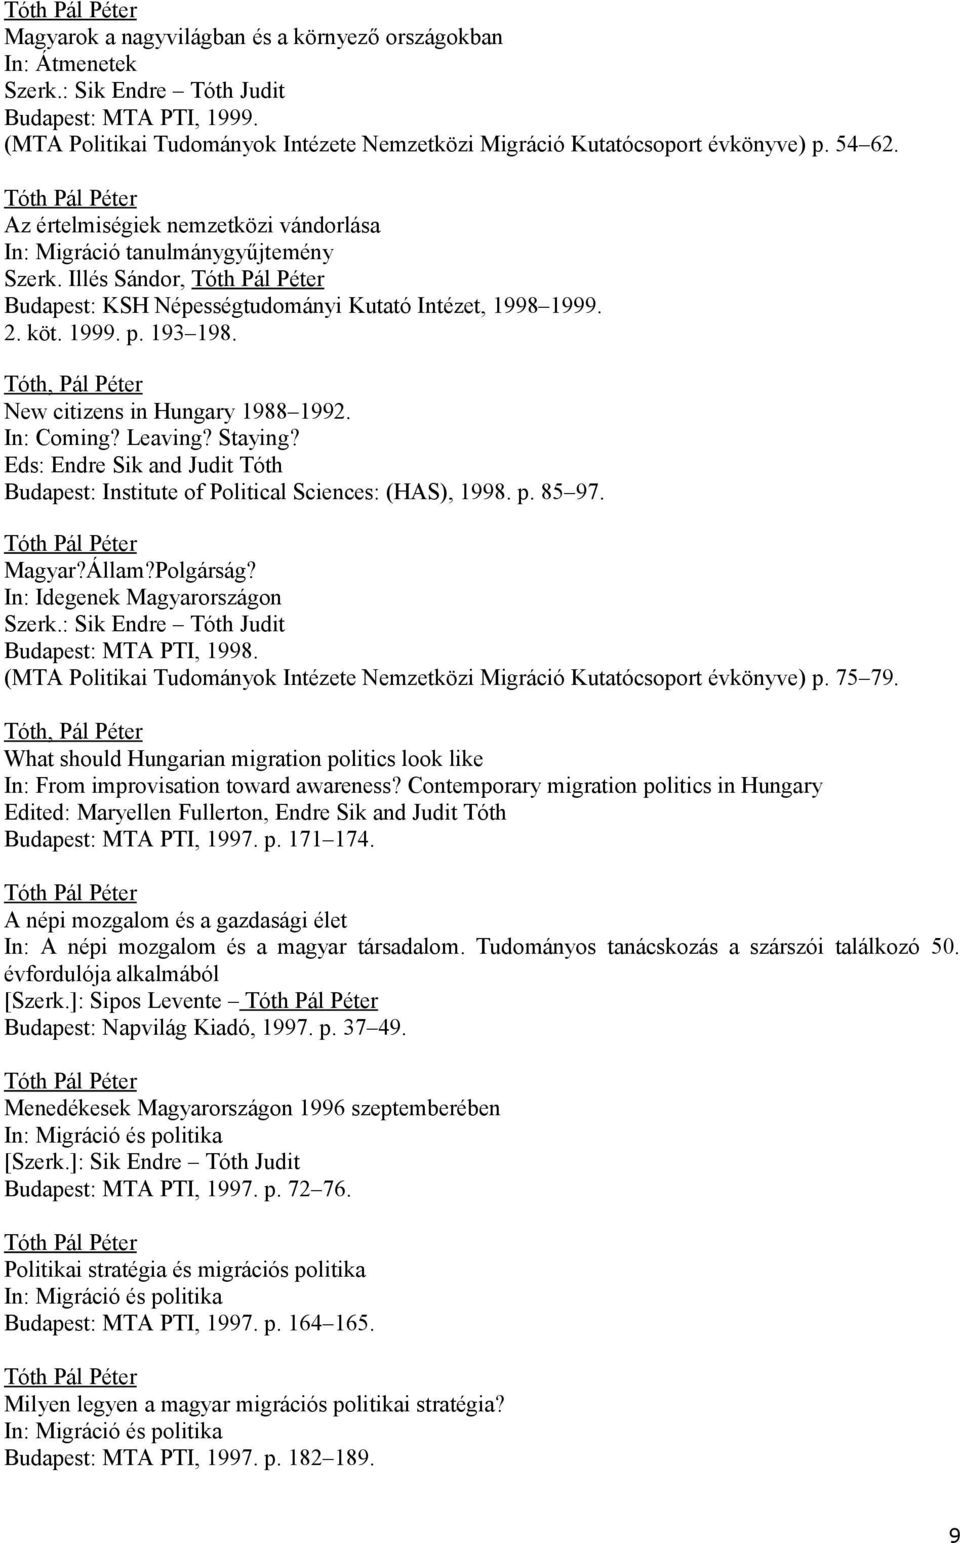 Tóth, Pál Péter New citizens in Hungary 1988 1992. In: Coming? Leaving? Staying? Eds: Endre Sik and Judit Tóth Budapest: Institute of Political Sciences: (HAS), 1998. p. 85 97. Magyar?Állam?Polgárság?